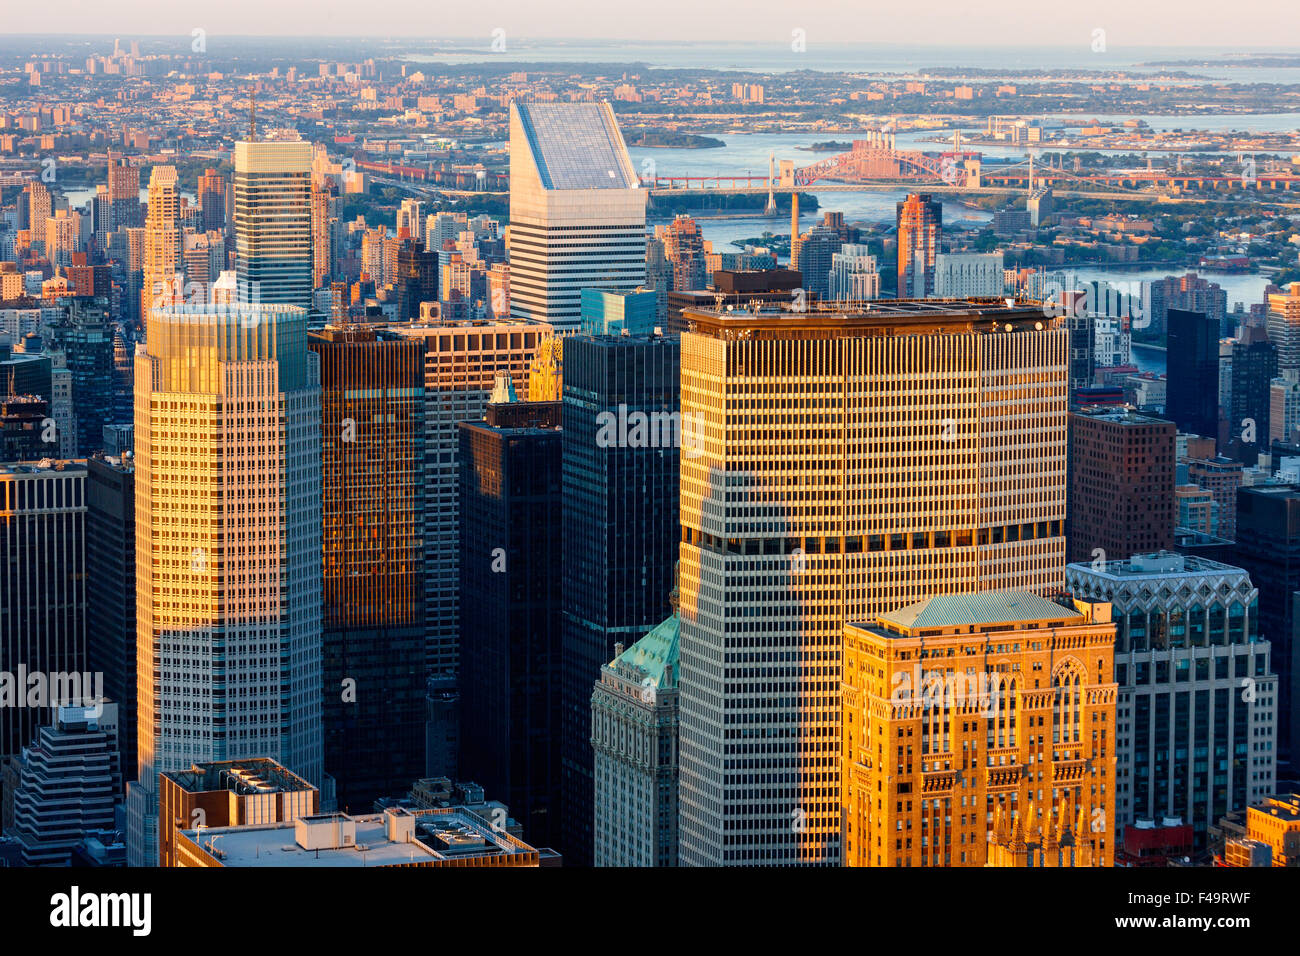 Vue aérienne de Manhattan gratte-ciel au coucher du soleil. New York City skyline. USA Photo Stock